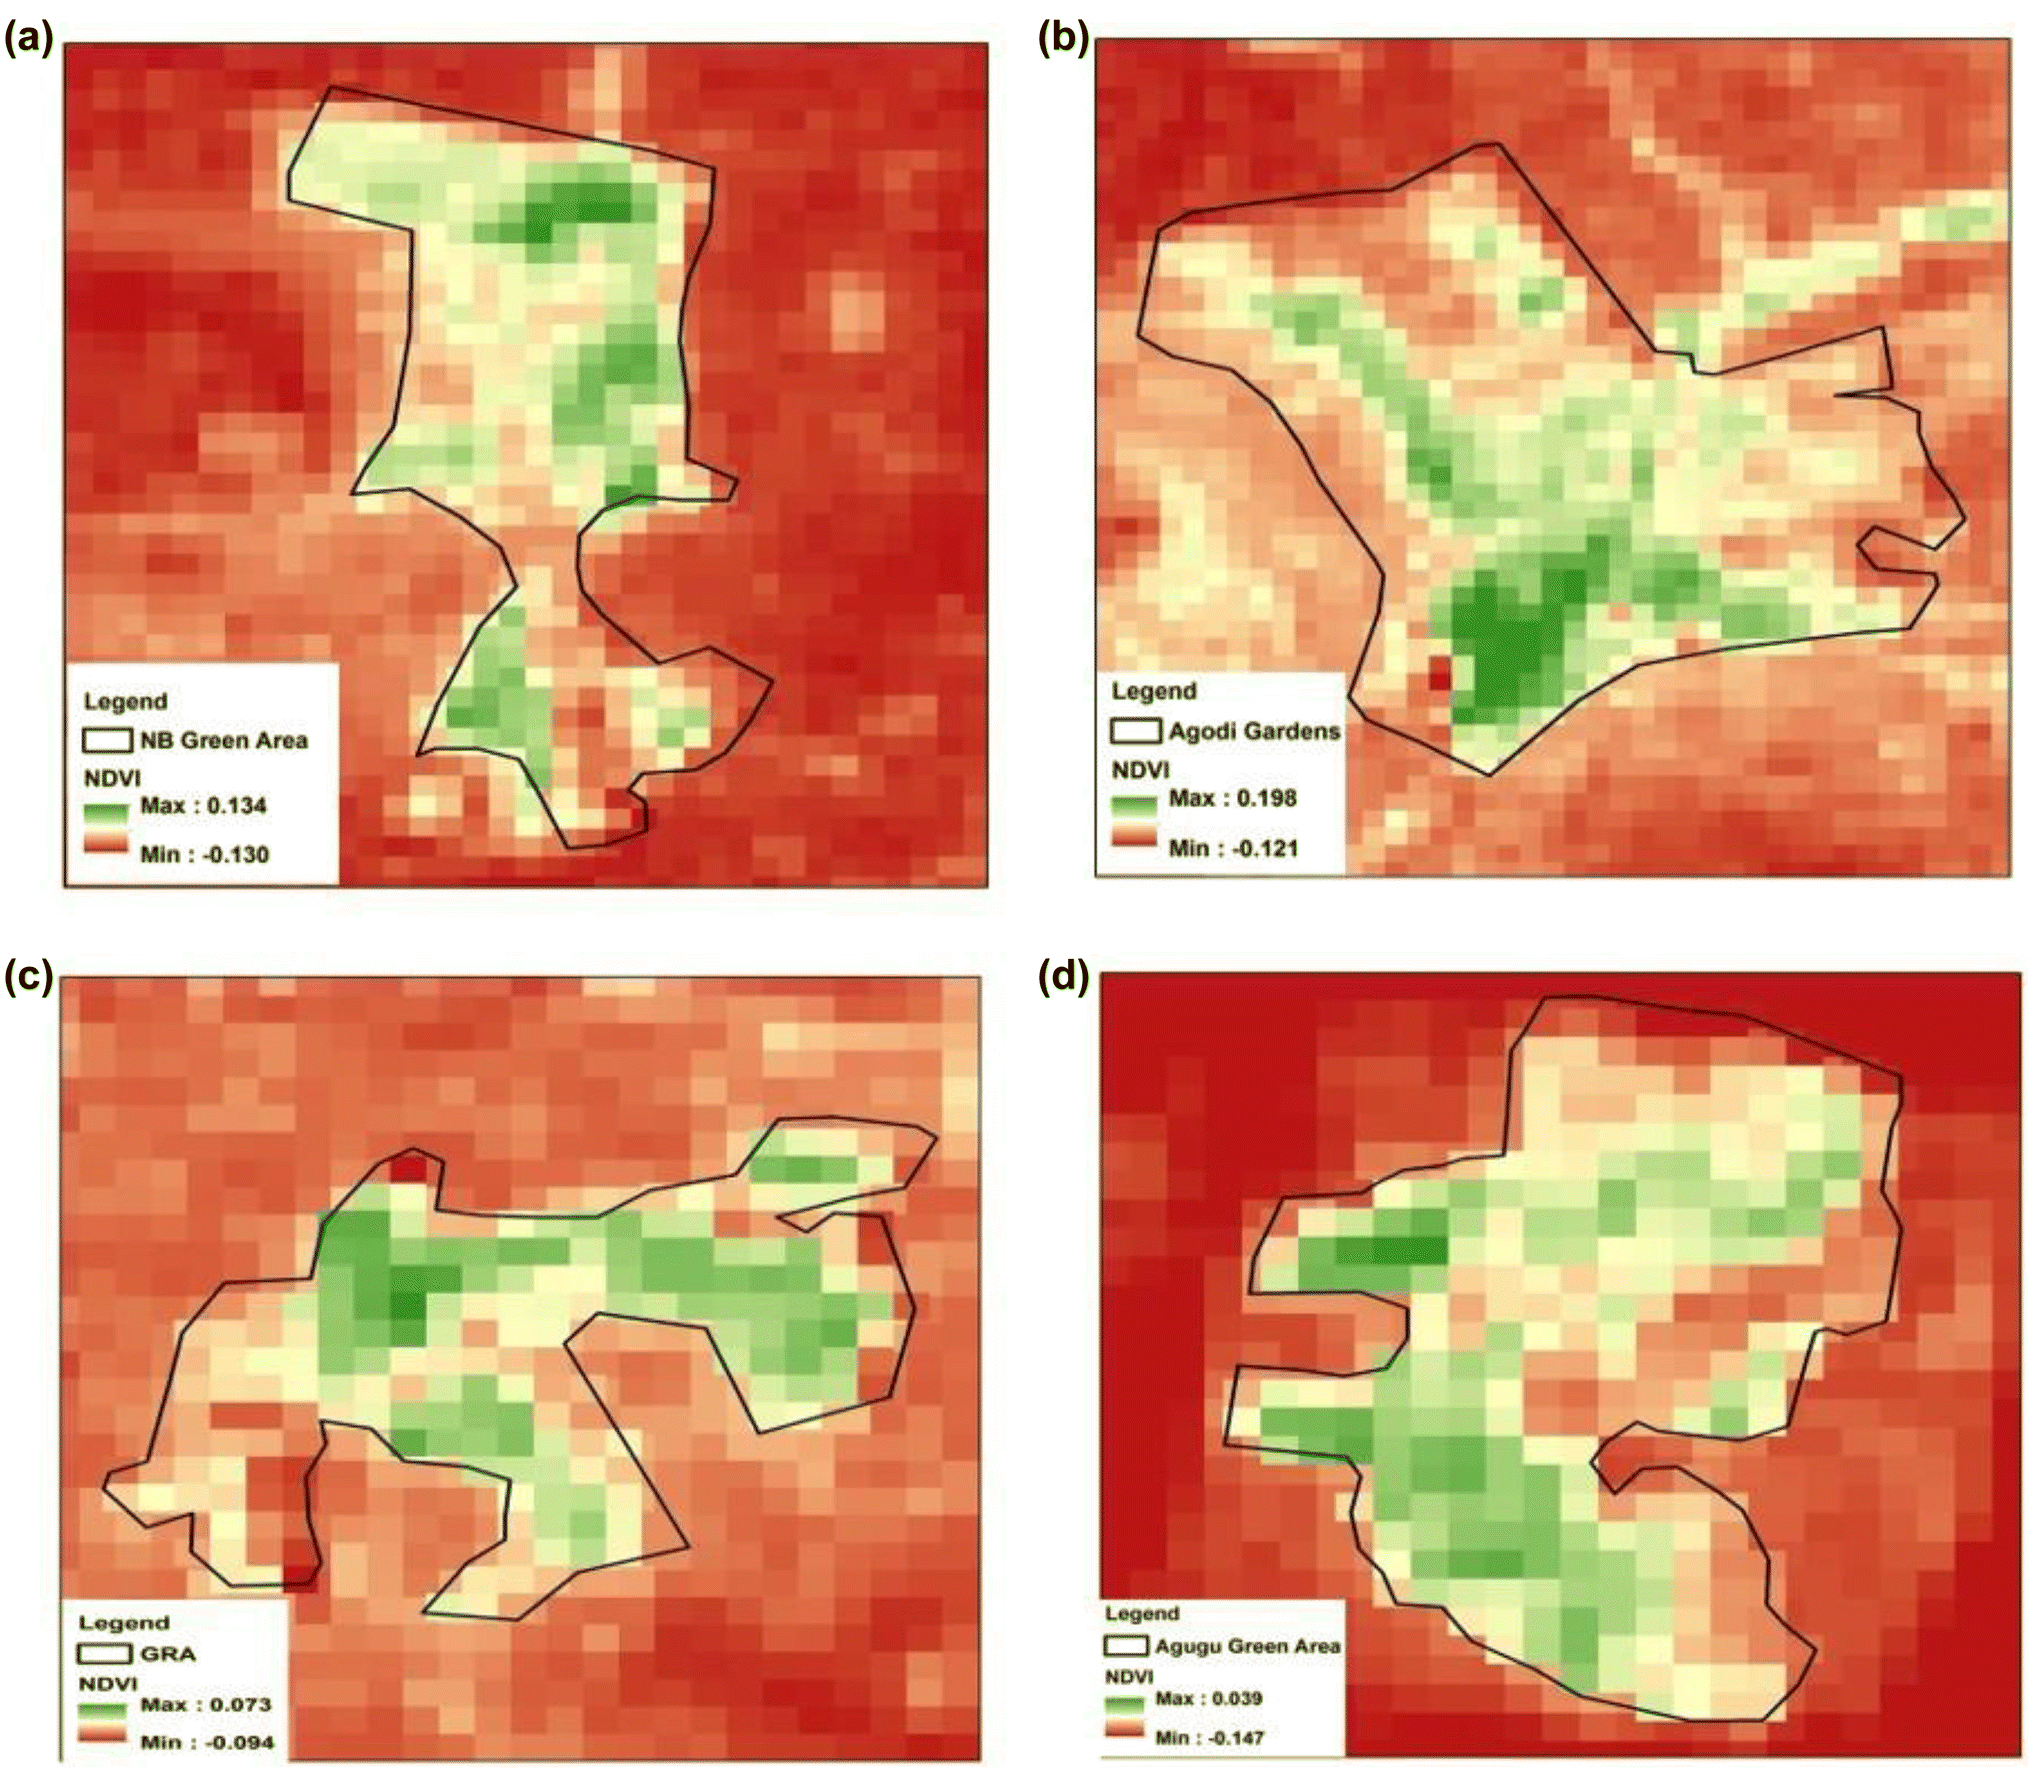 The impact of urban green areas on the surface thermal environment on